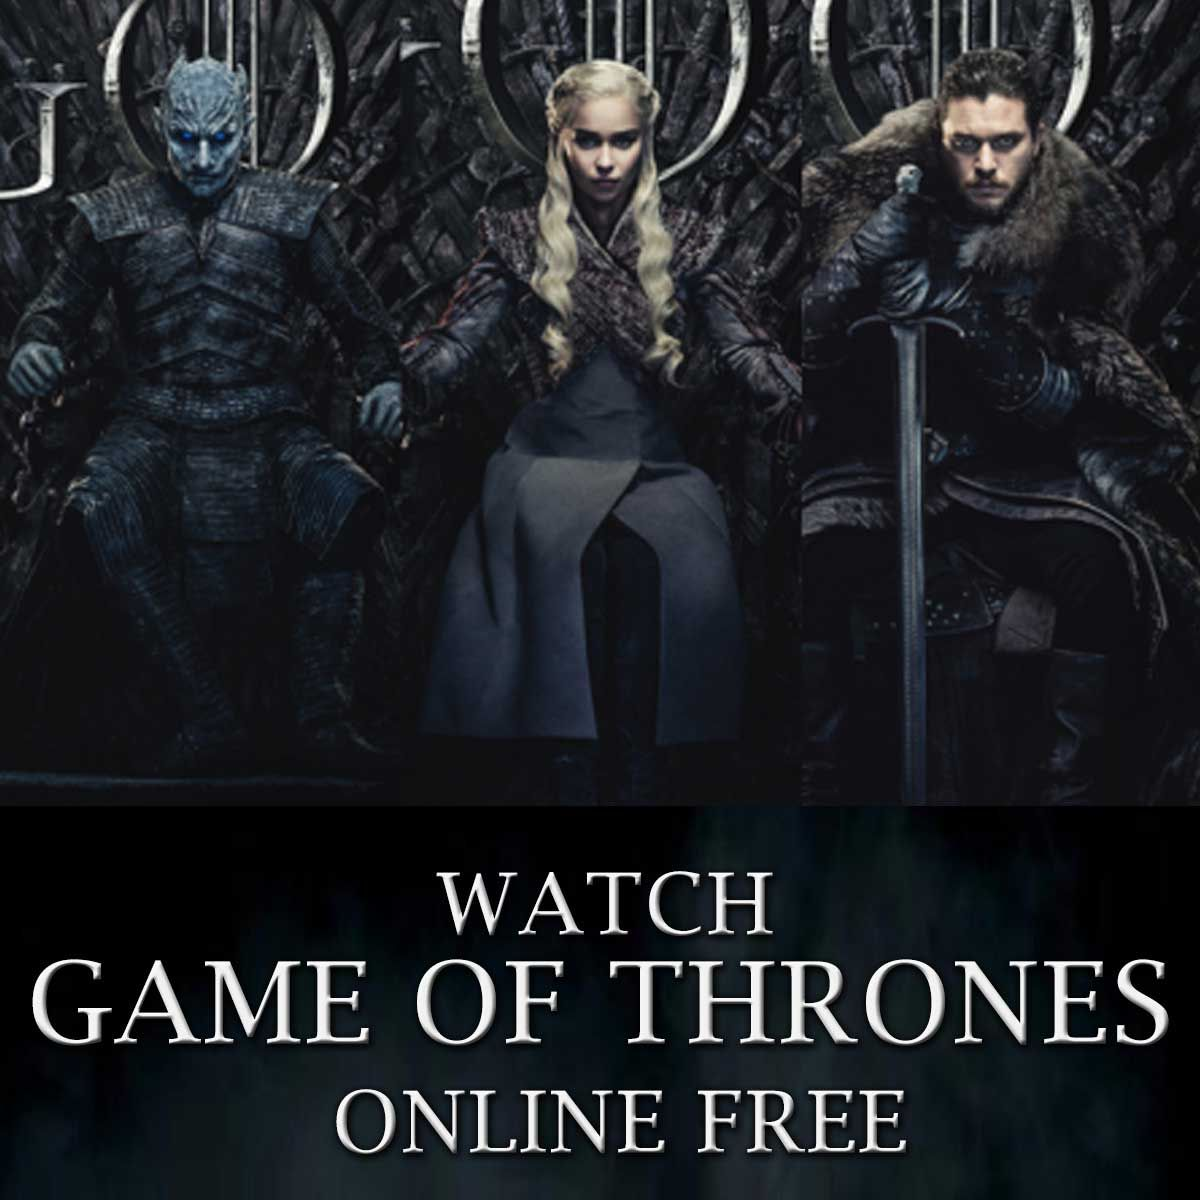 sites to watch game of thrones online free